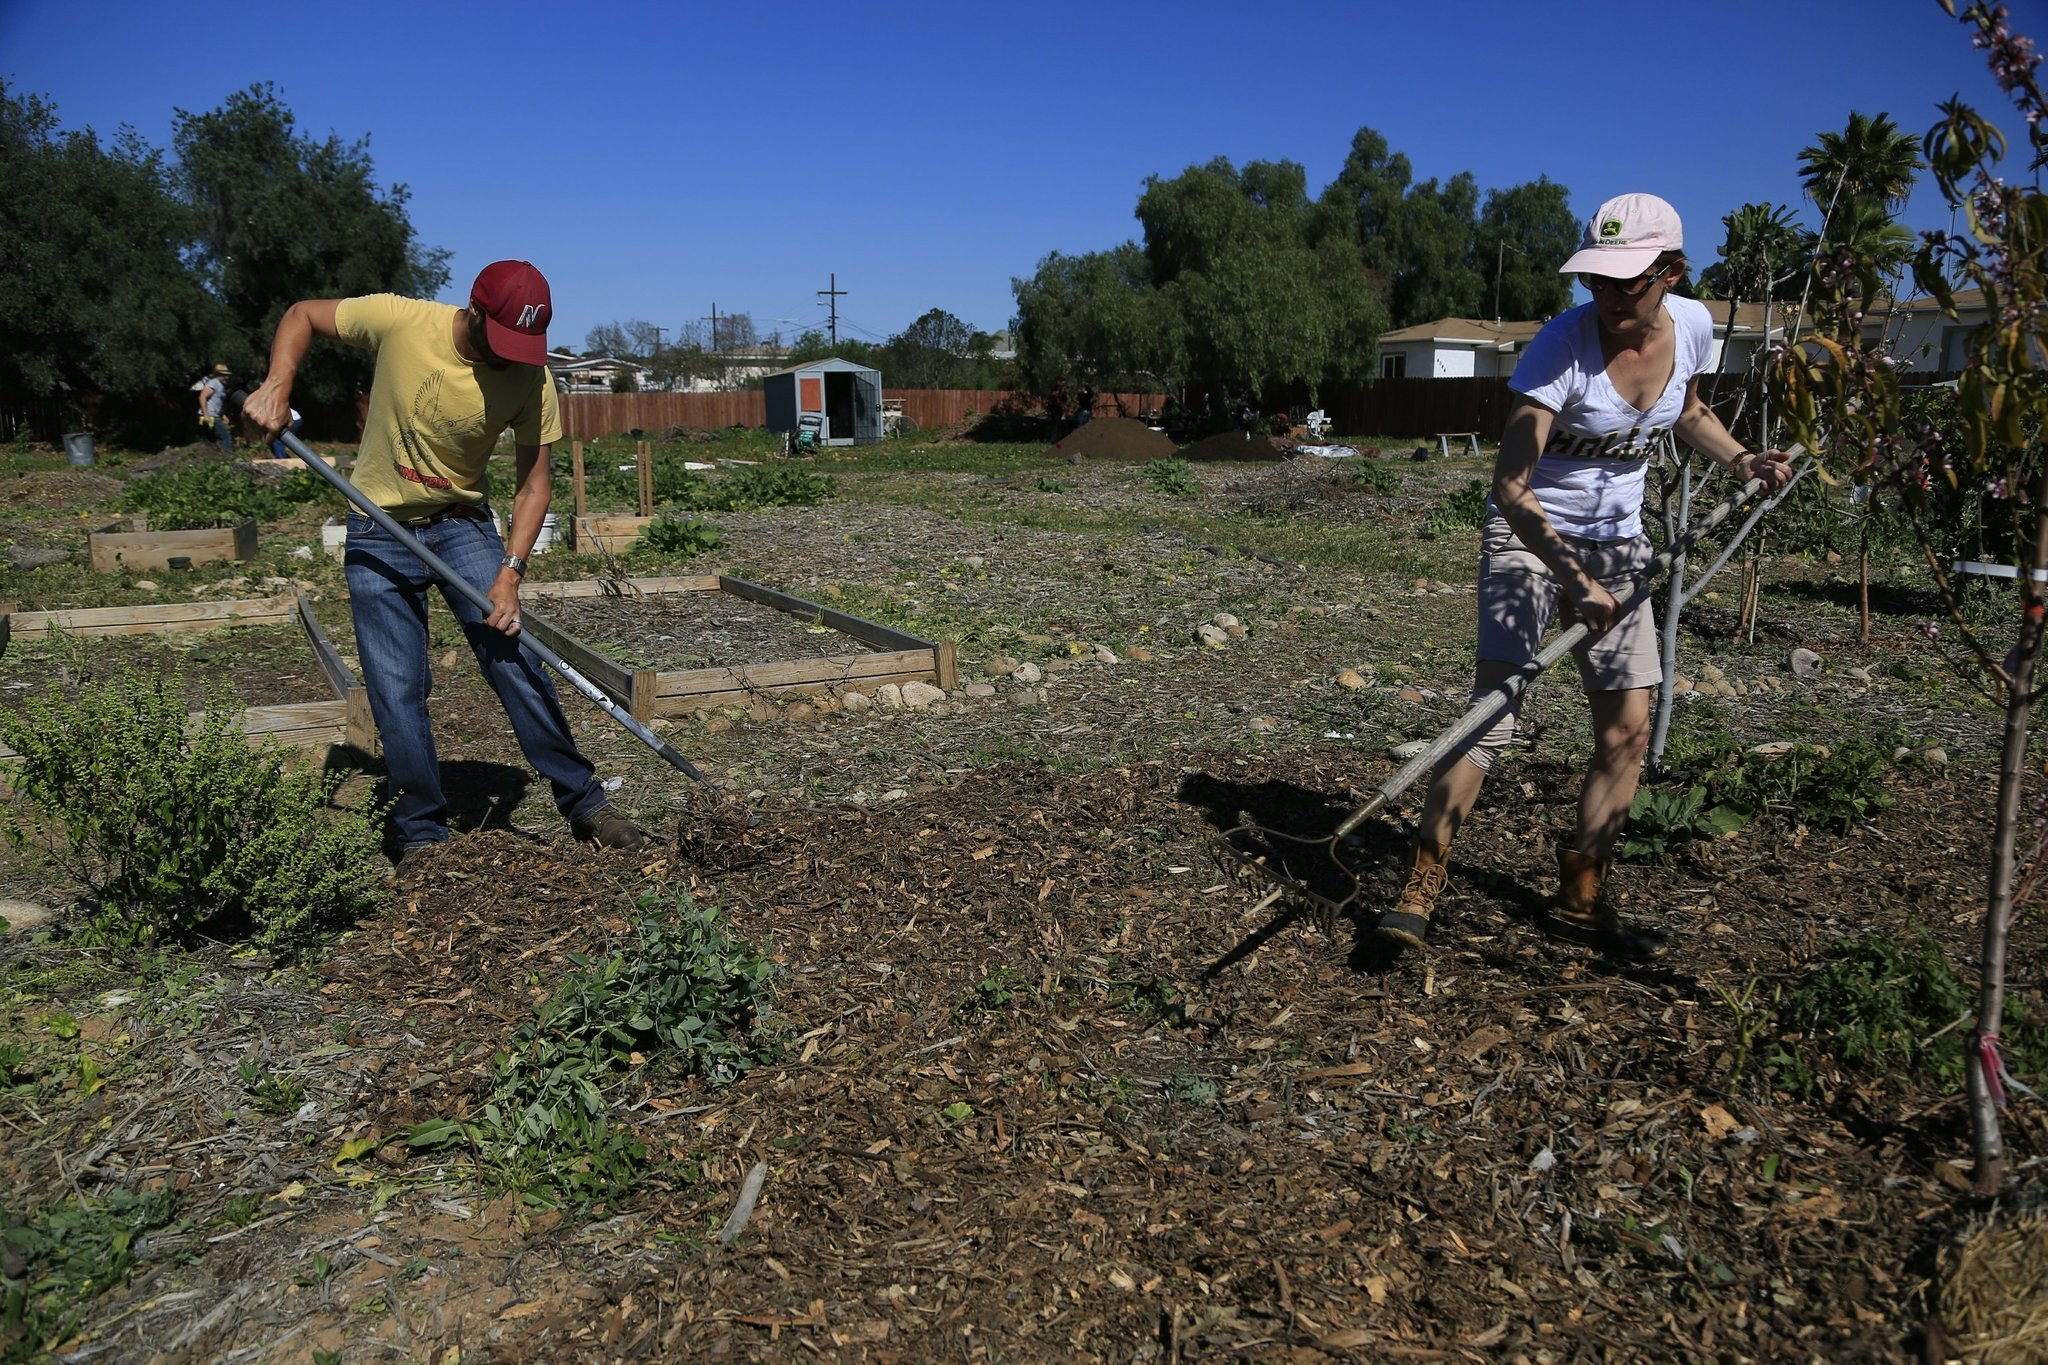 UCSD is studying community gardens as worldwide food source. - The ...